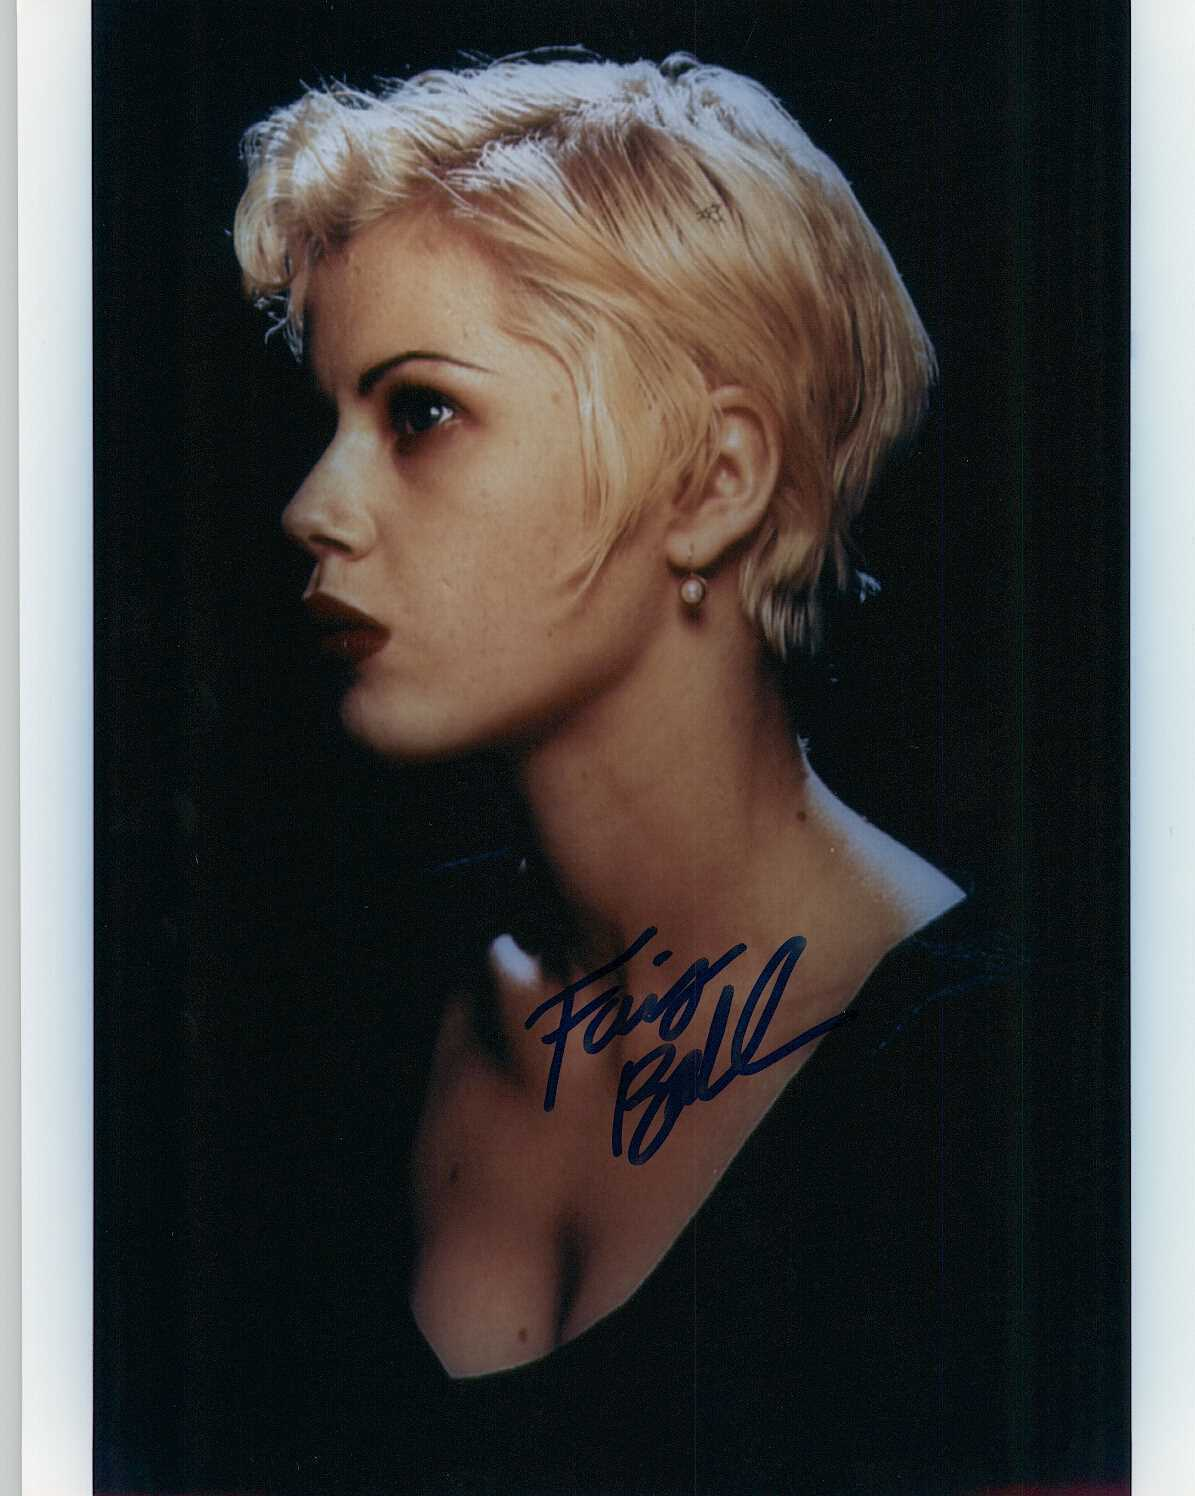 Primary image for Fairuza Balk Signed Autographed Glossy 8x10 Photo